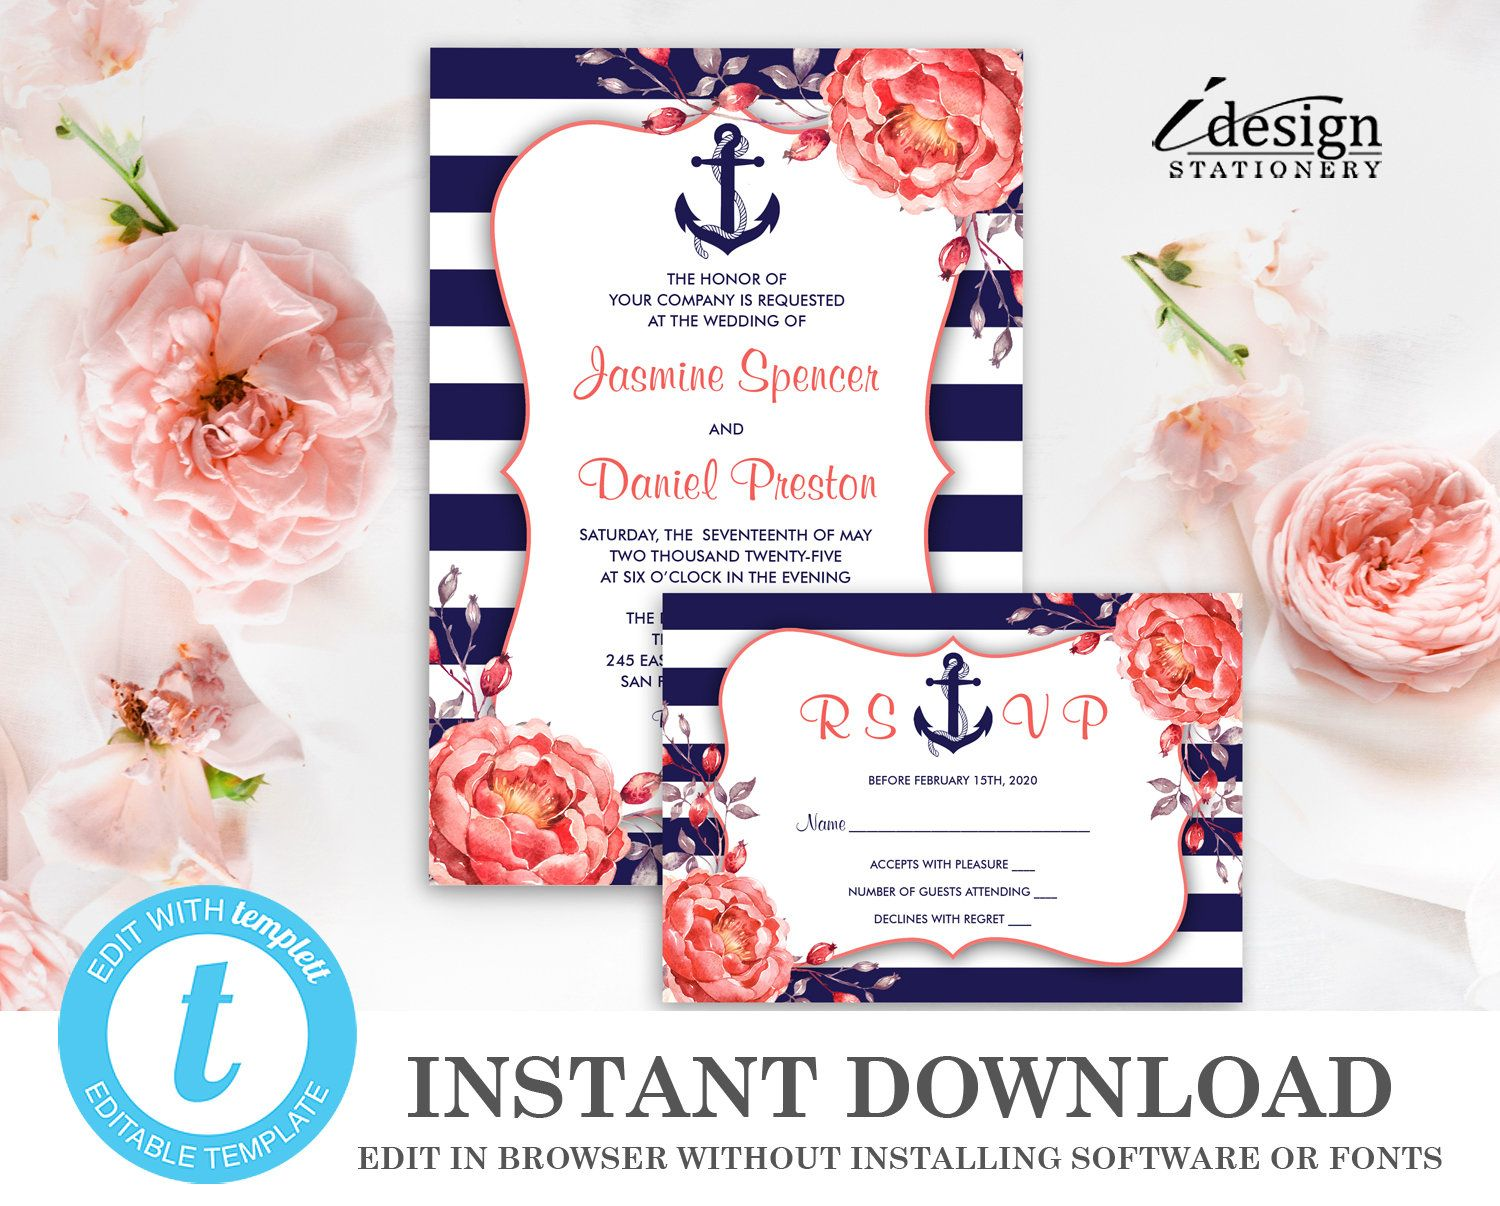 Nautical Wedding Invitation Template With Rsvp Card Instant Etsy Nautical Wedding Invitations Wedding Invitation Templates Wedding Invitations